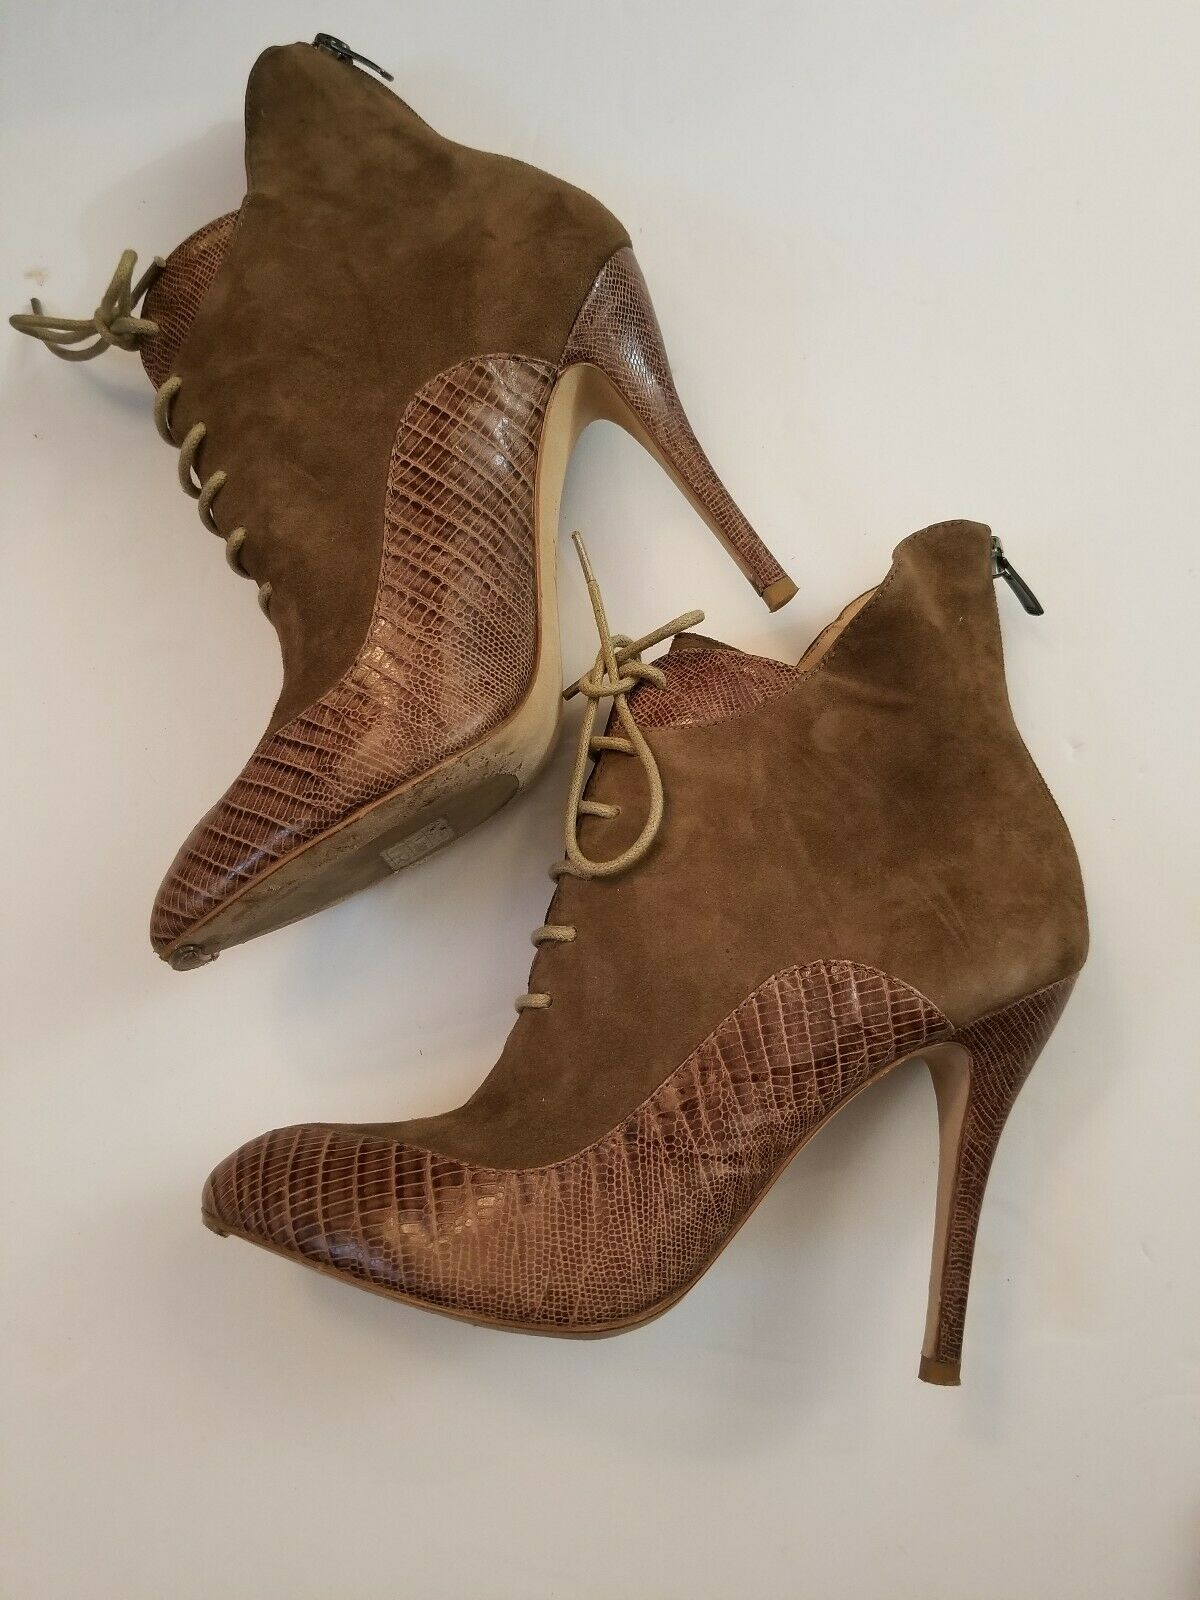 ASK ALICE TIA BOOTIE LIGHT BROWN SUEDE LEATHER ANKLE HEELS WOMENS Sz 38.5 US 8.5